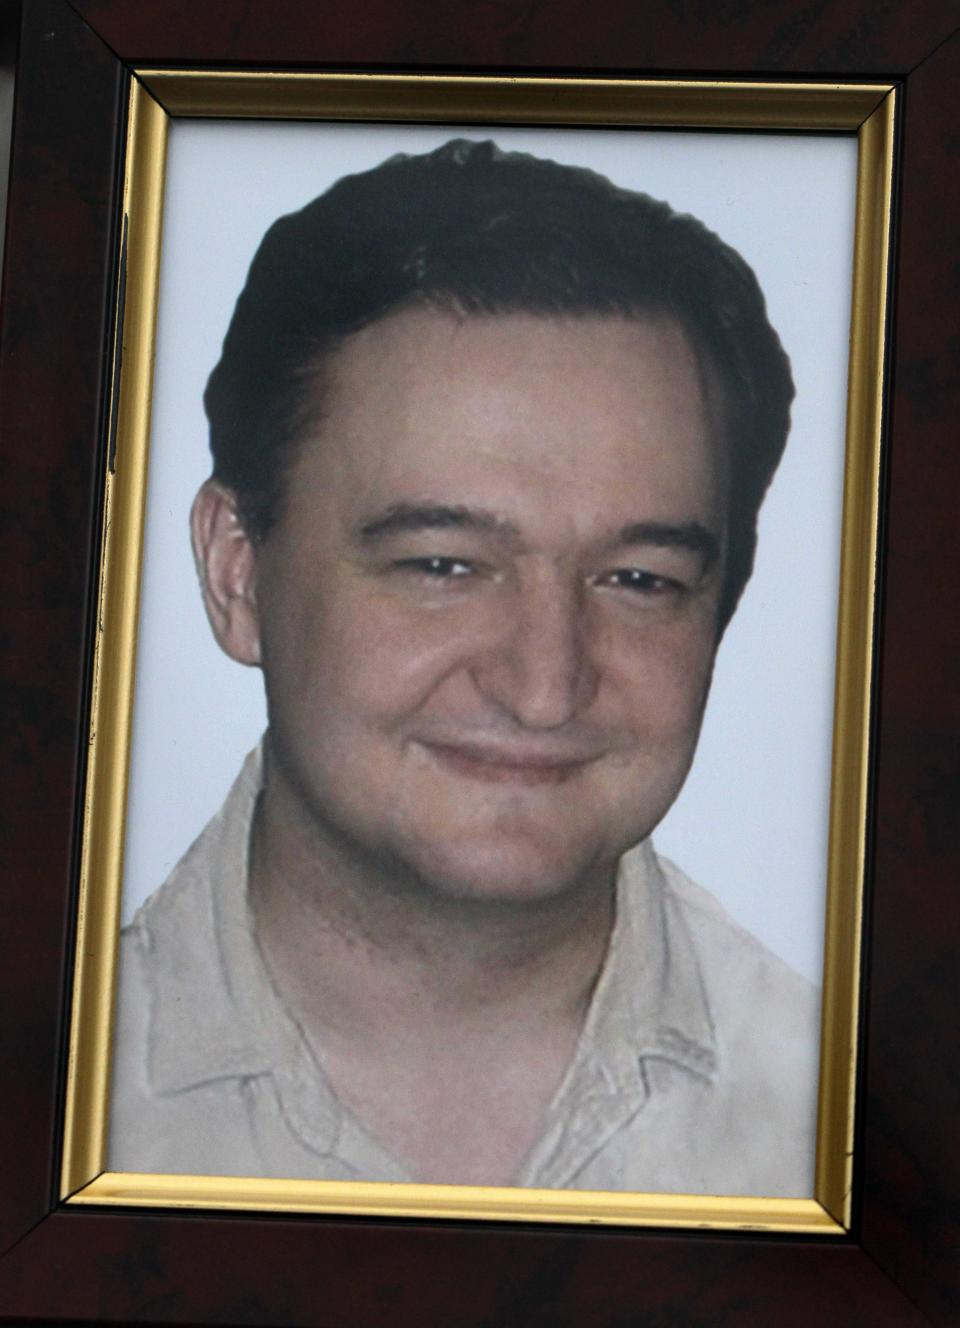 Russia tries whistleblower, despite his death